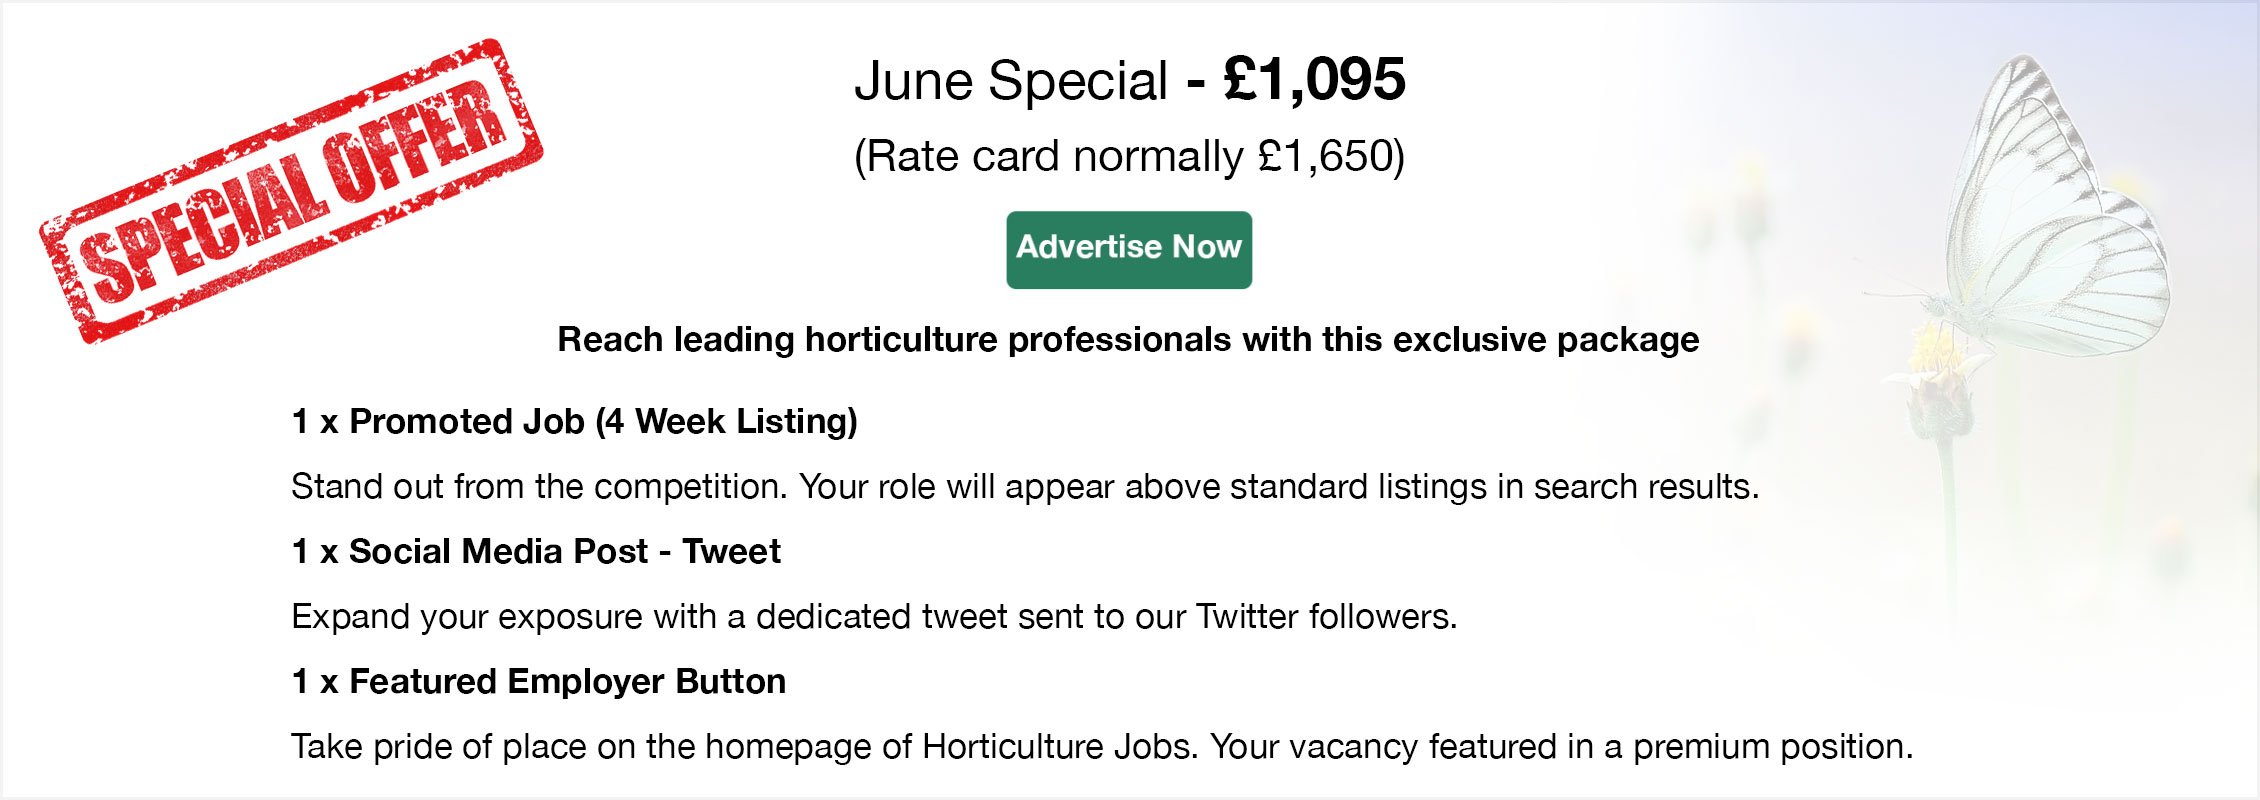 Special Offer. June Special - £1,095 (Rate card normally £1,650). Advertise Now. Reach leading horticulture professionals with this exclusive package. 1 x Promoted Job (4 Week Listing). Stand out from the competition. Your role will appear above standard listings in search results. 1 x Social Media Post - Tweet. Expand your exposure with a dedicated tweet sent to our Twitter followers. 1 x Featured Employer Button. Take pride of place on the homepage of Horticulture Jobs. Your vacancy featured in a premium position.